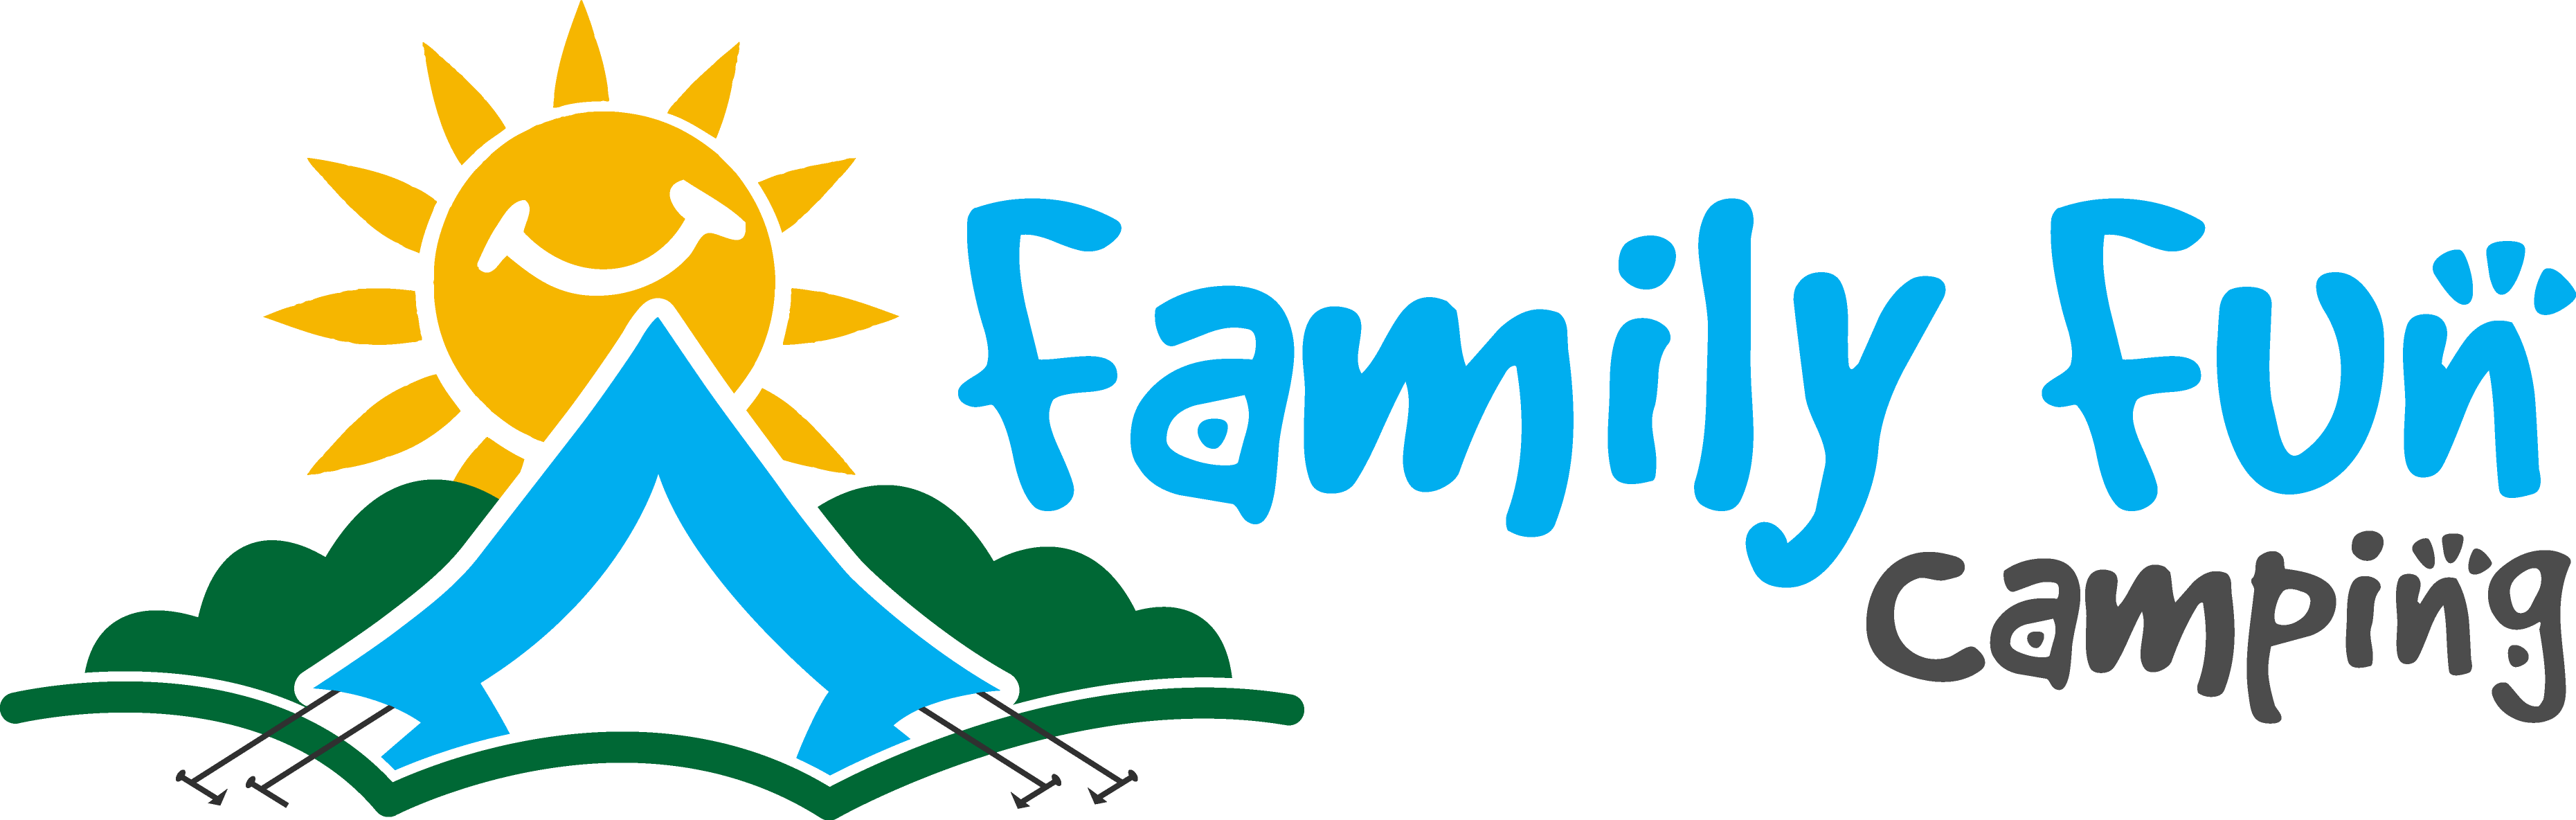 Camping with little children. Clipart tent family camp